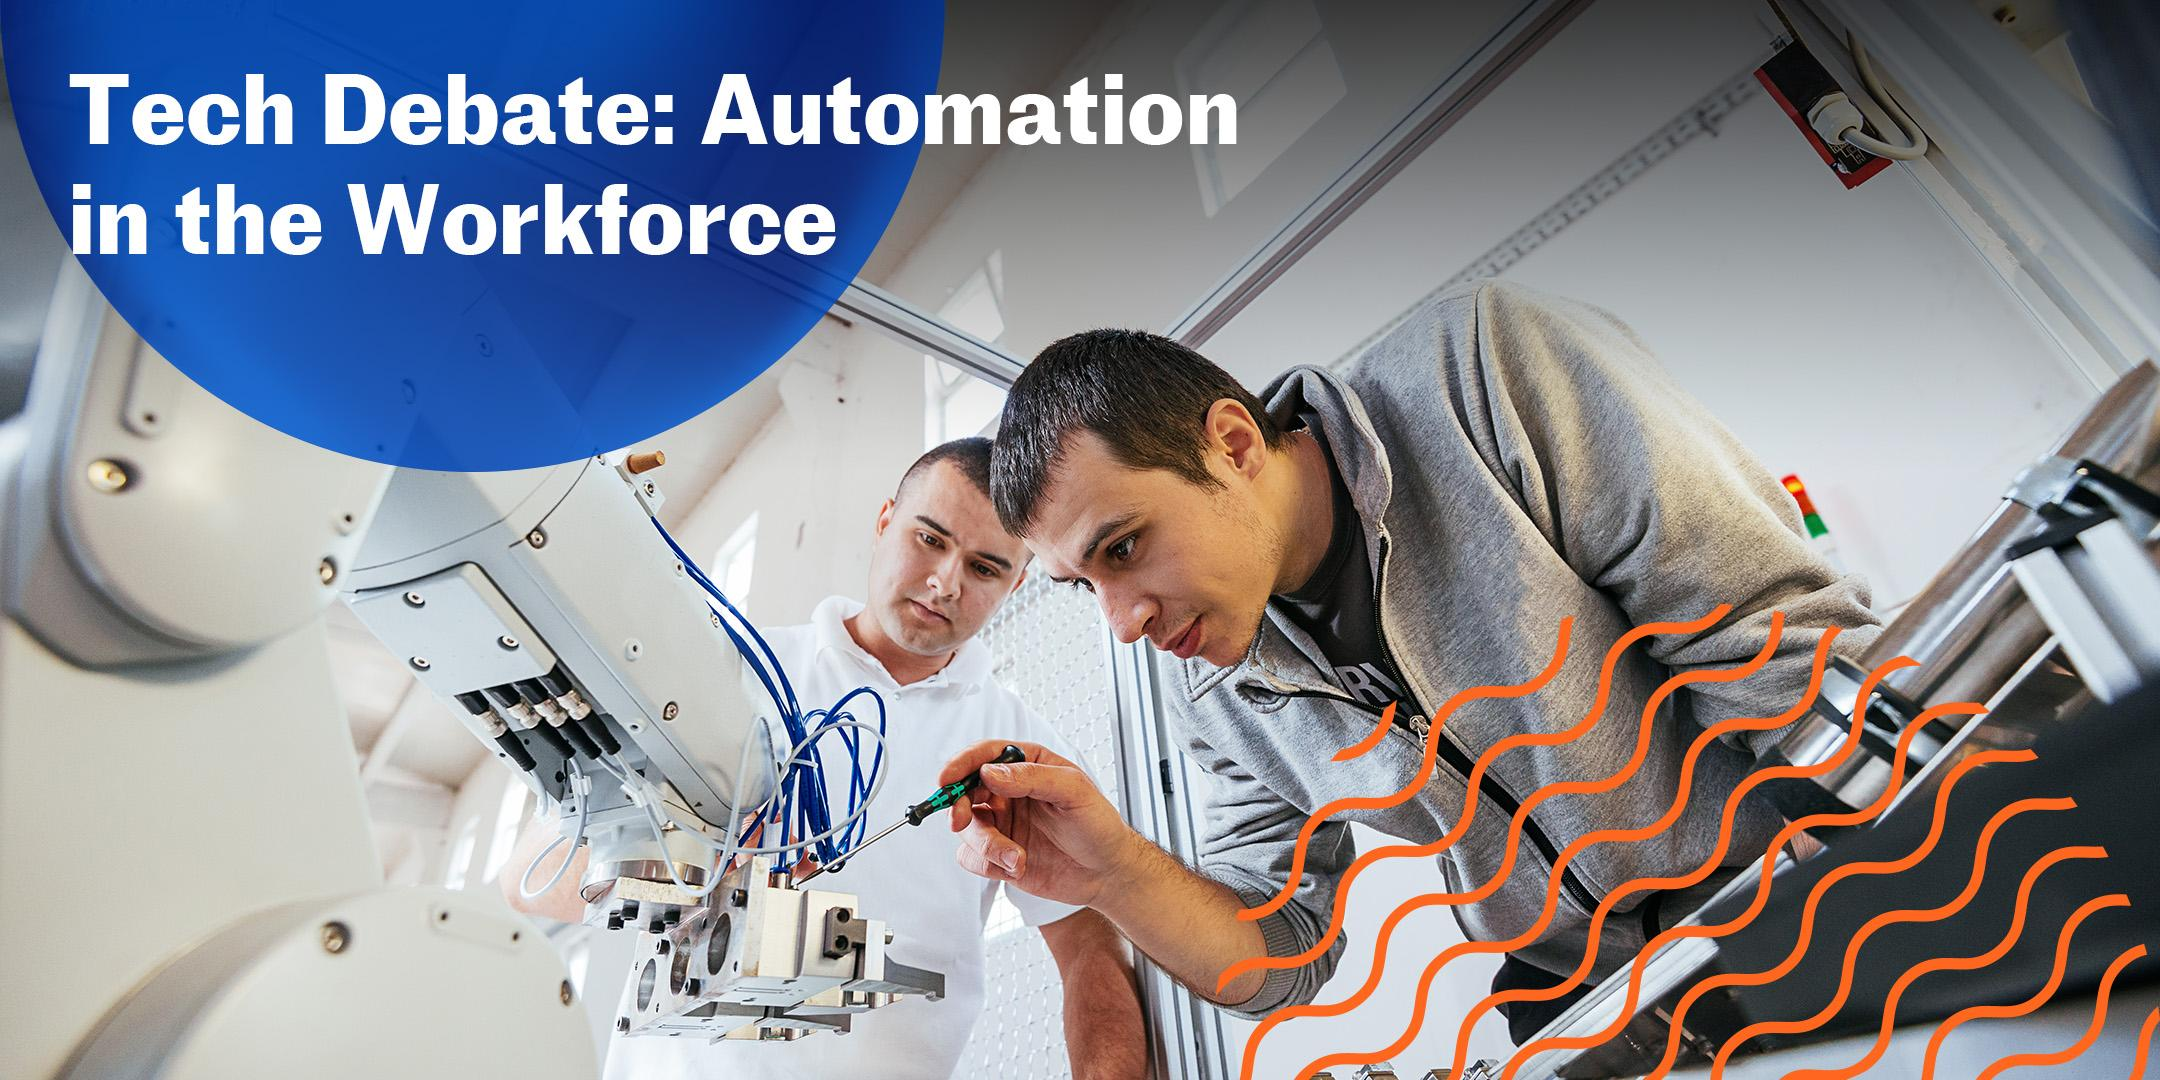 Tech Debate: Automation in the Workforce